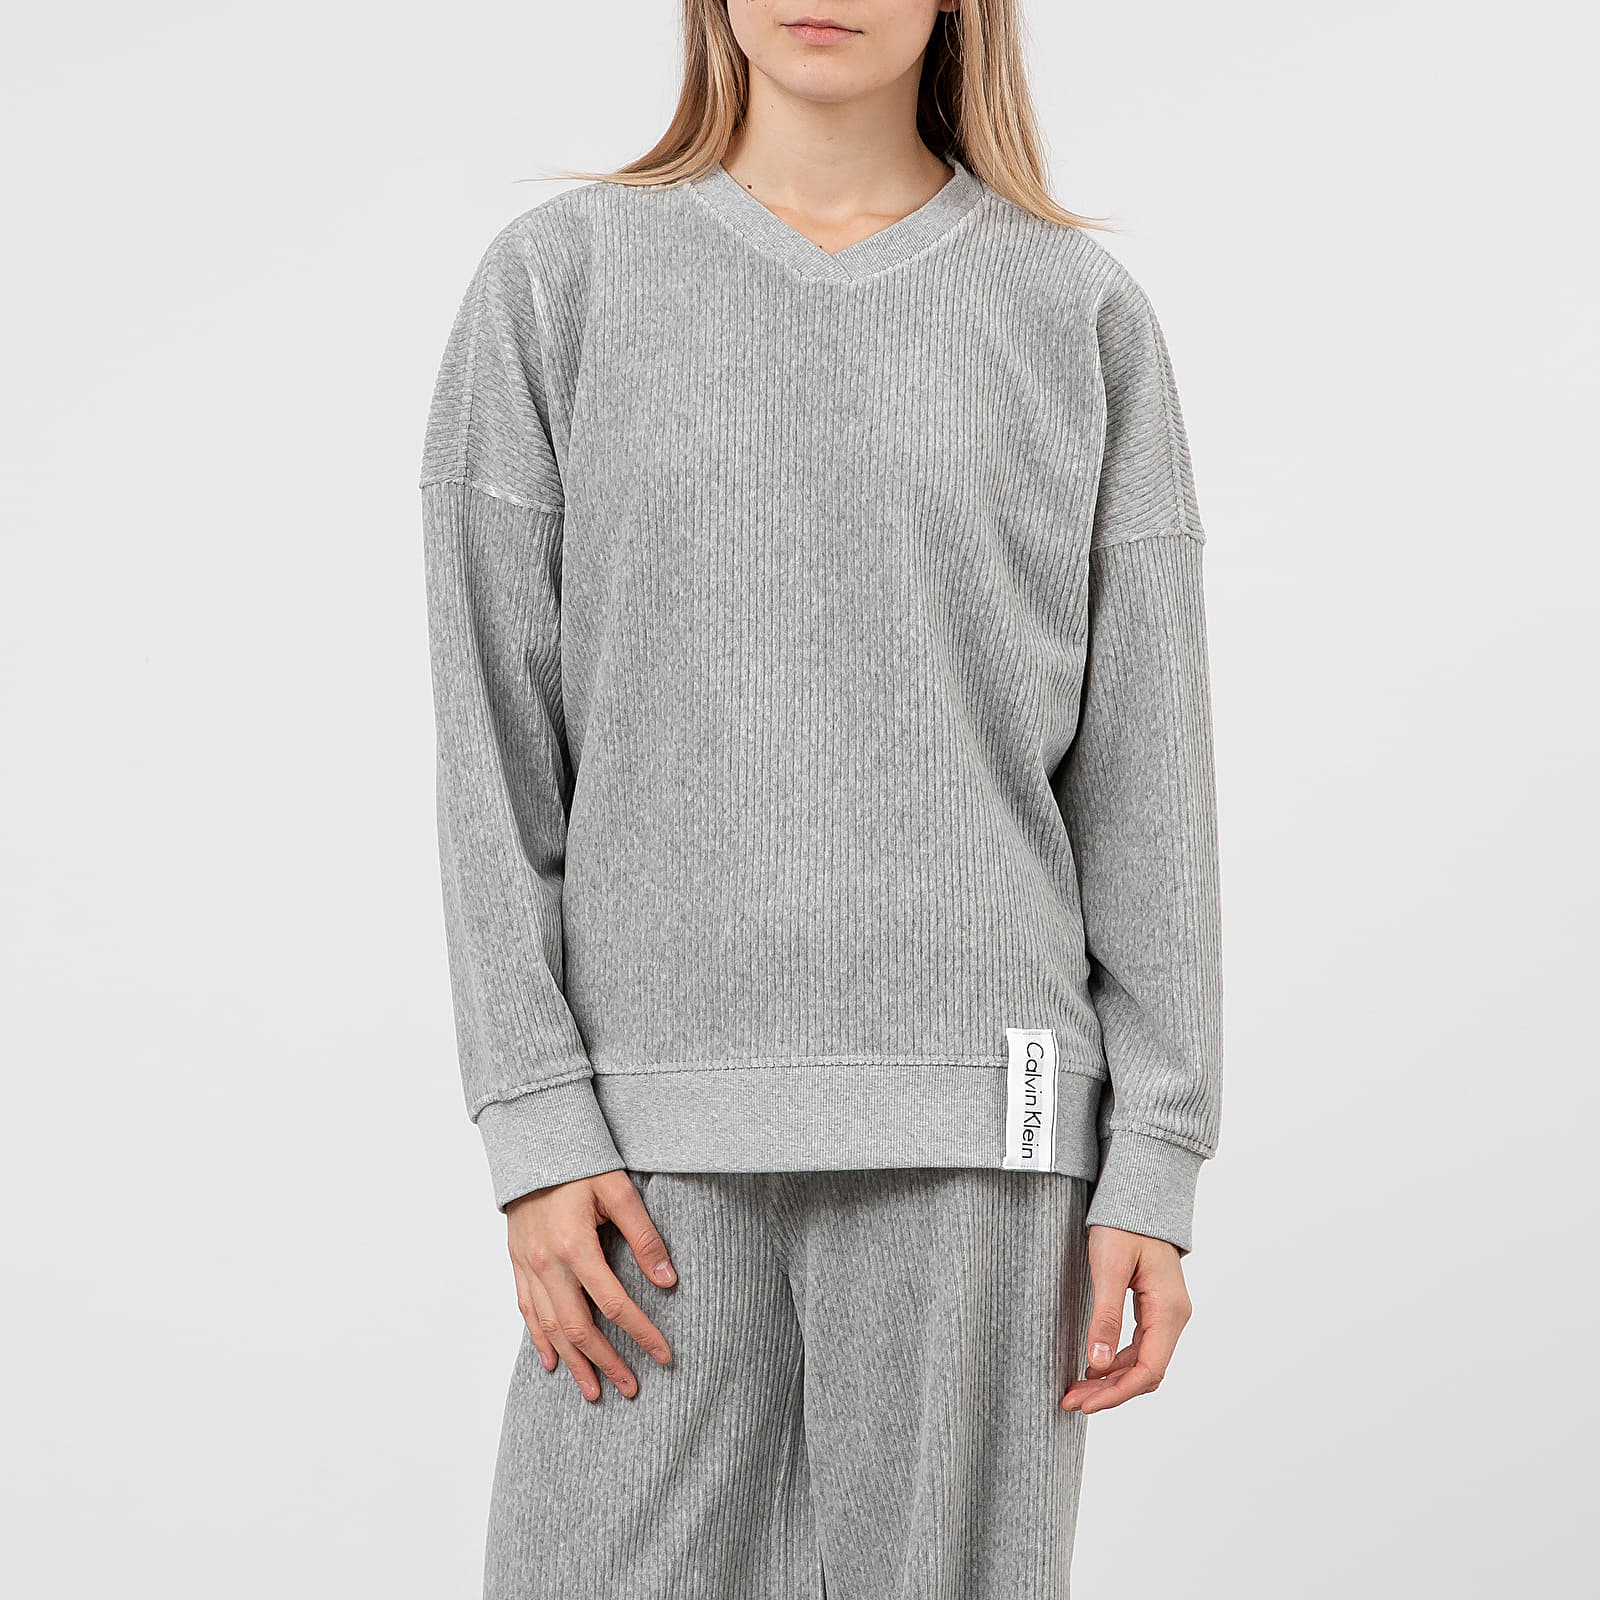 Sweatshirts Calvin Klein Long Sleeve Lounge Sweatshirt Grey Heather